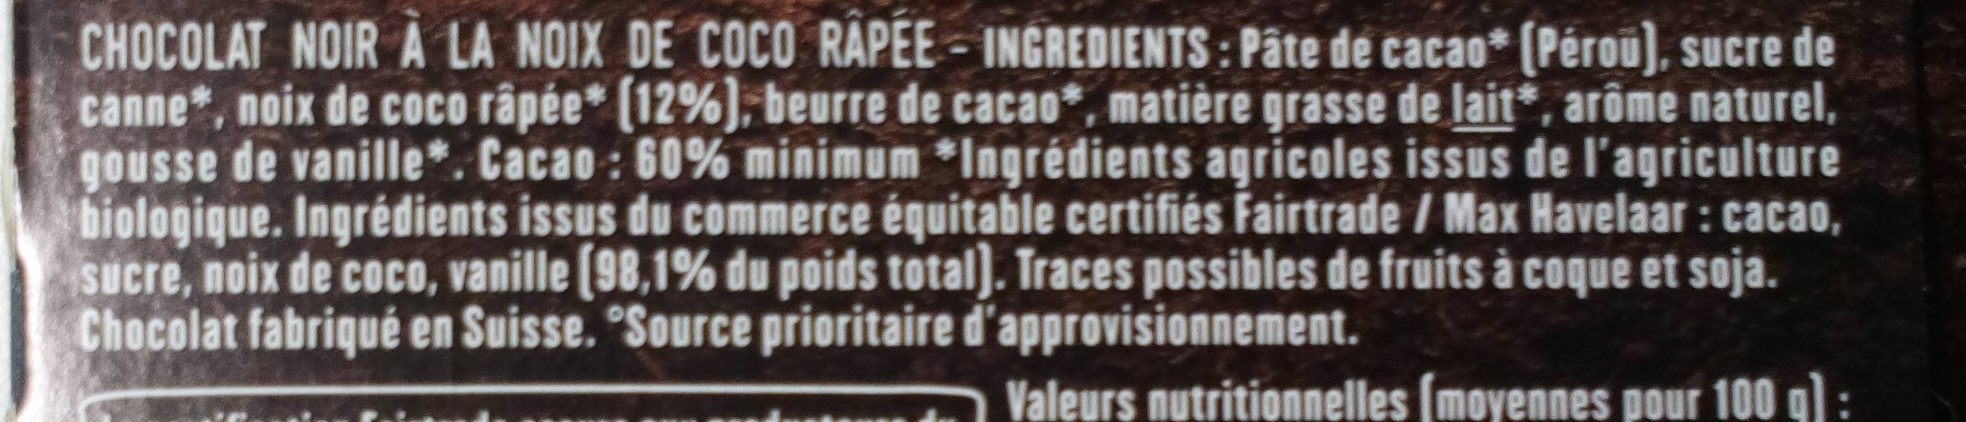 Chocolat Noir éclats De Coco - Ingredients - fr